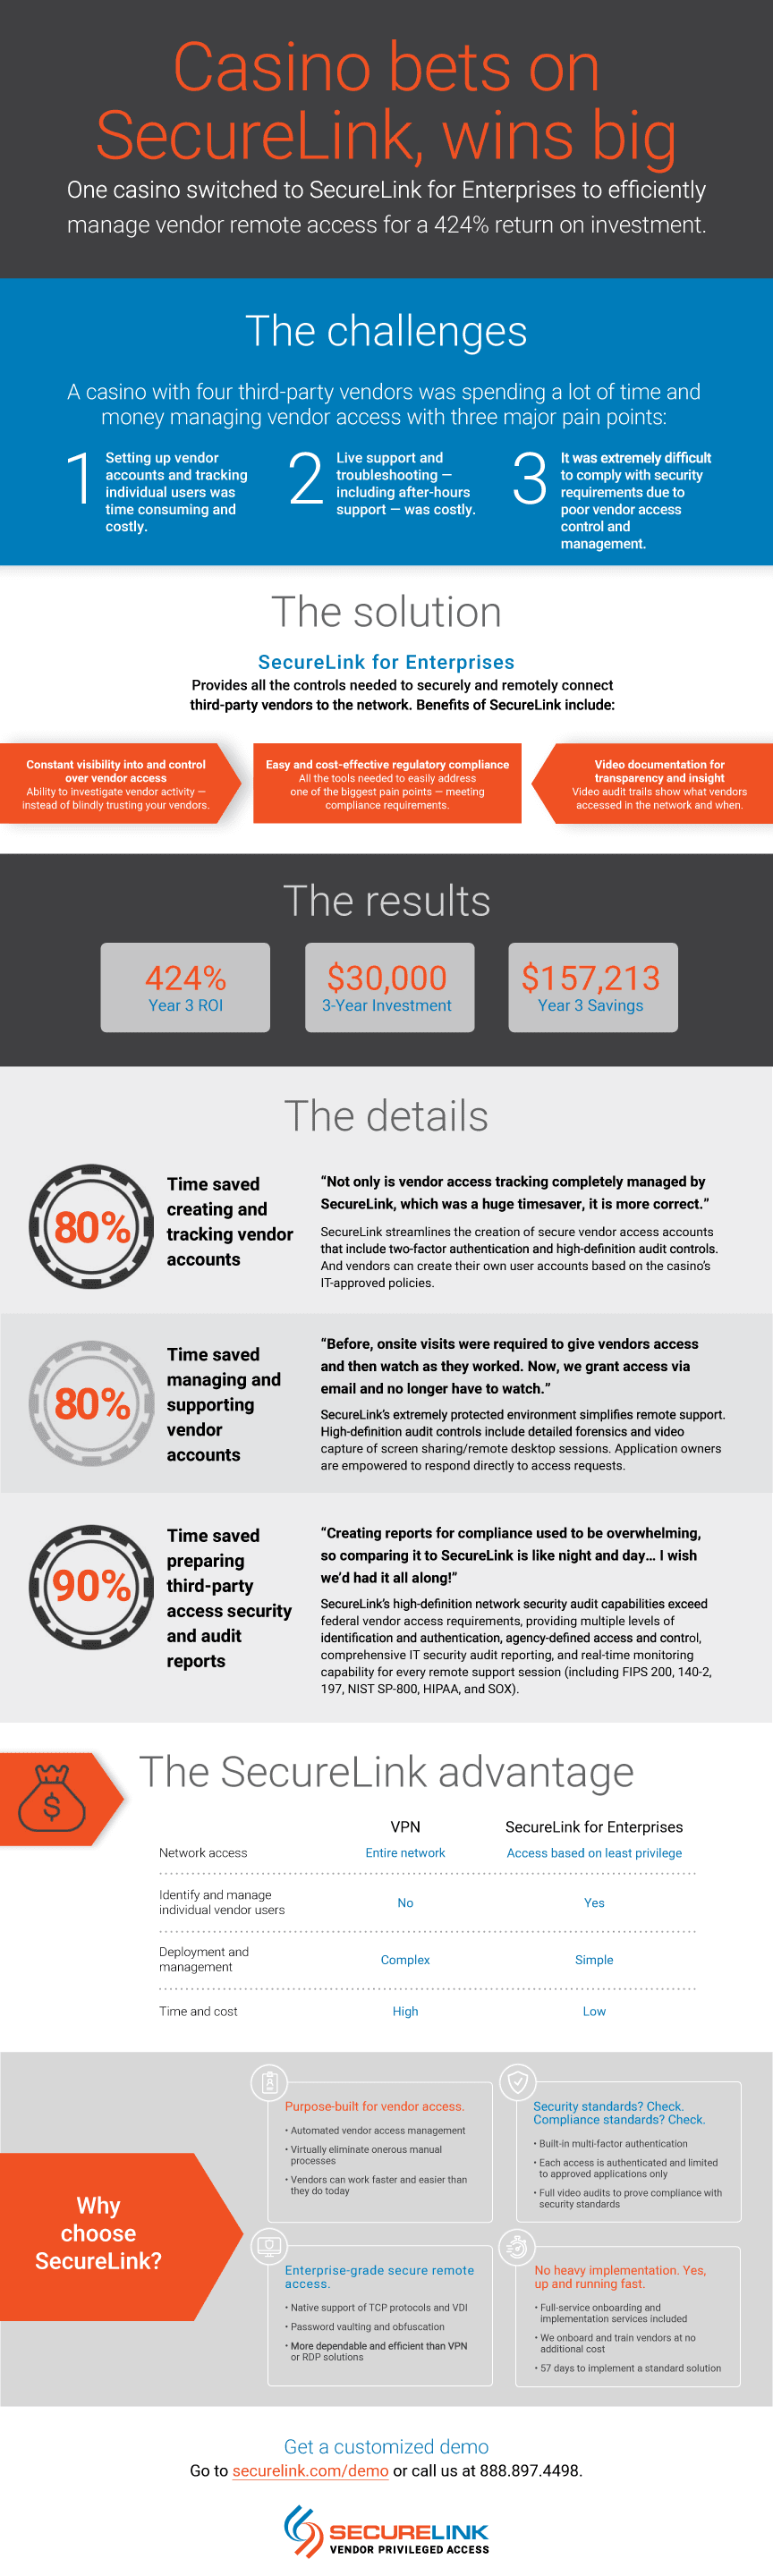 Casino bets on SecureLink, wins big #infographic